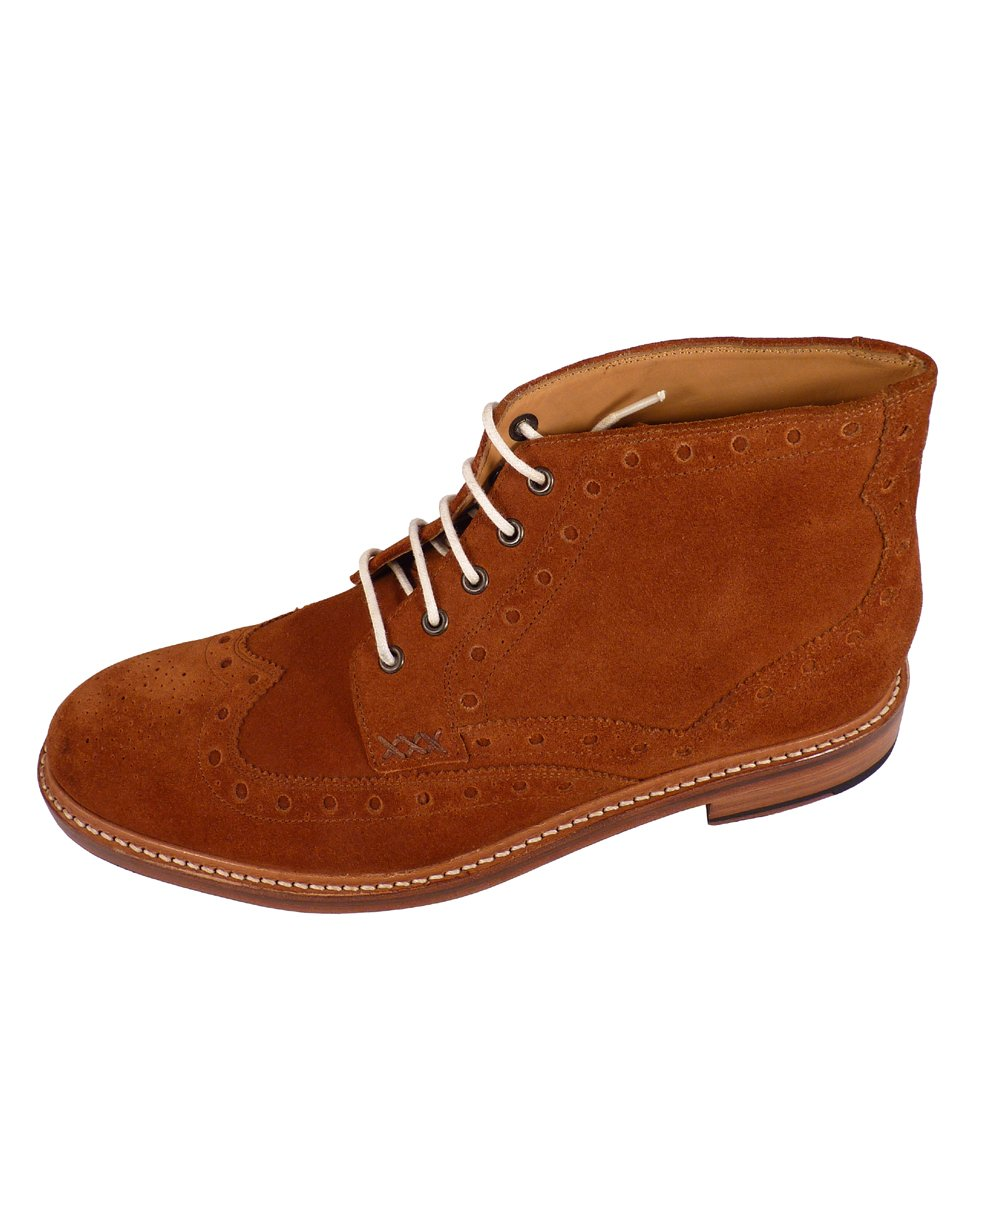 oliver sweeney benhall suede brogue boots oliver